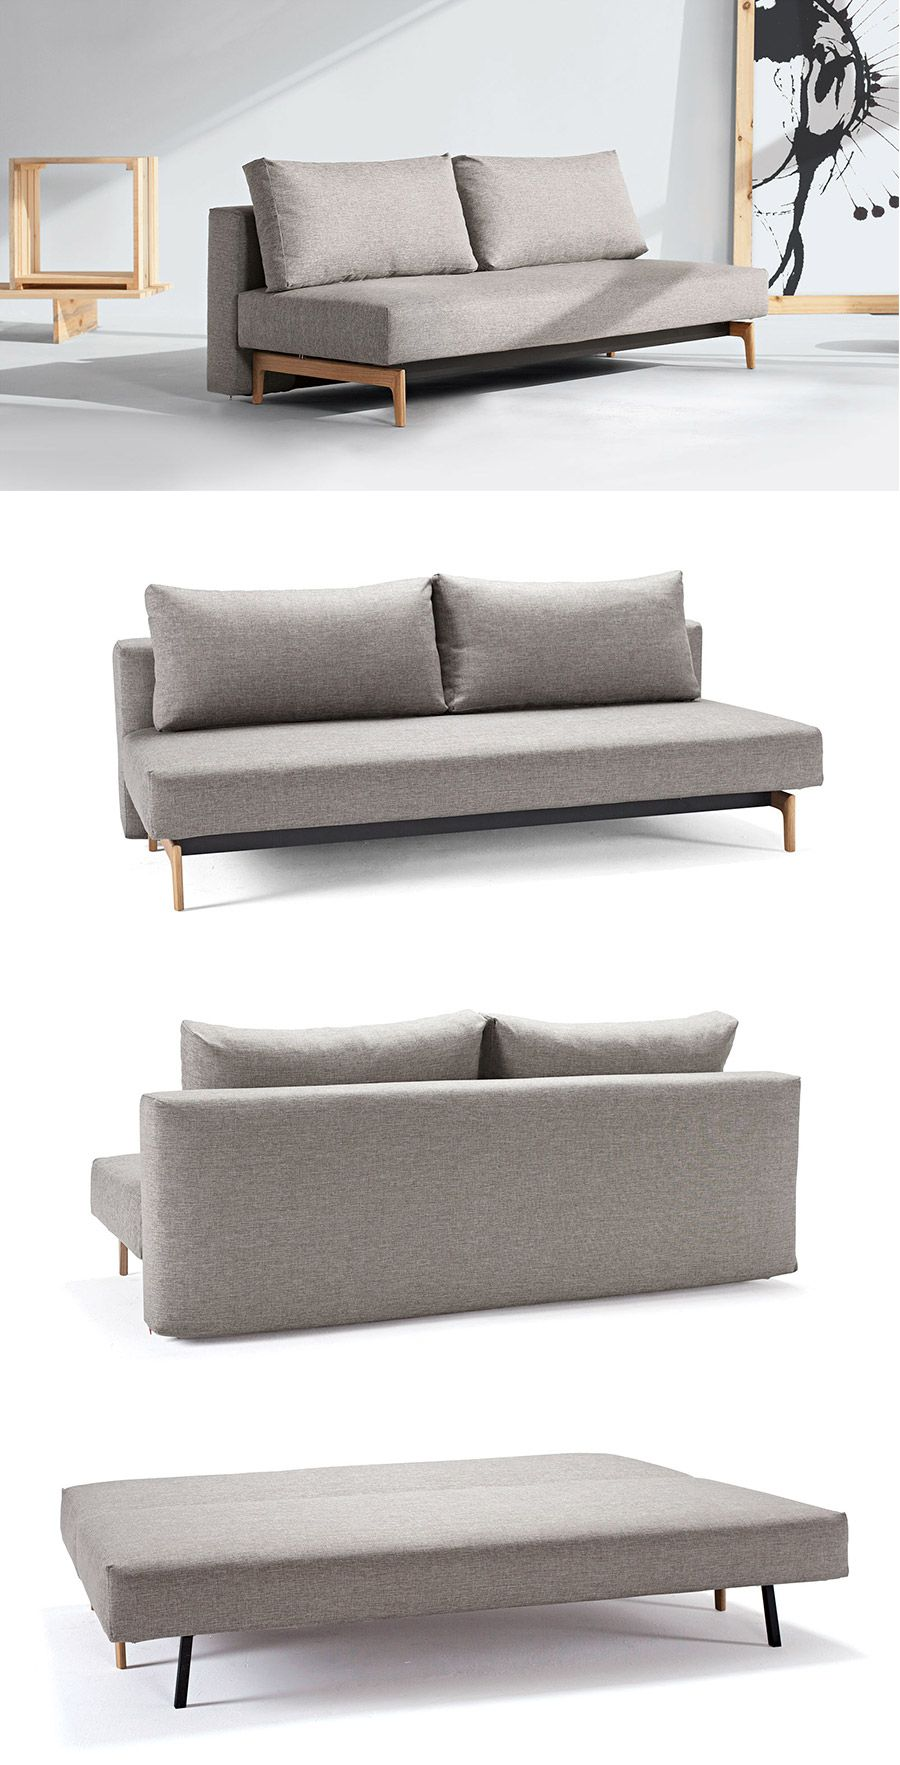 Design Schlafsofas Best 20+ Design Schlafsofa Ideas On Pinterest